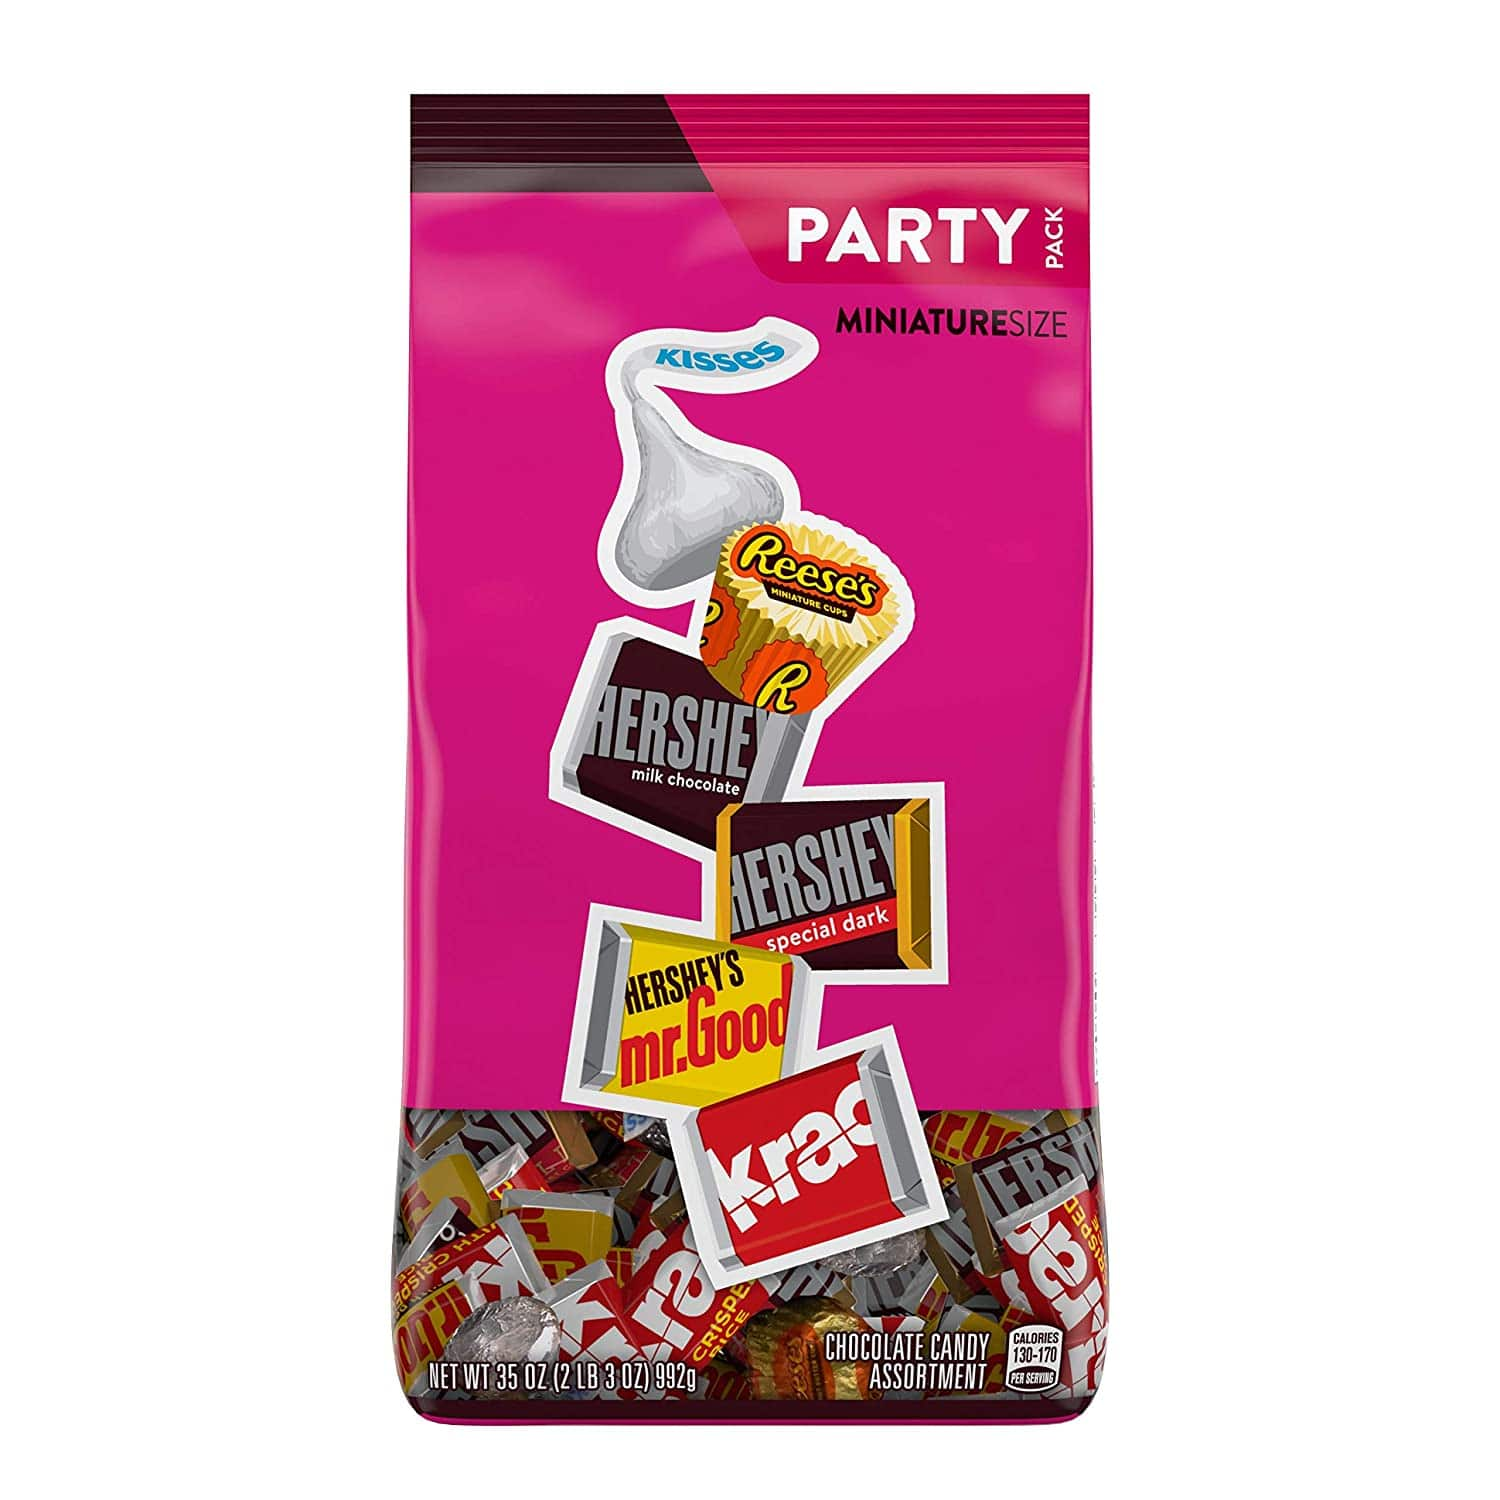 35 oz Hershey's chocolate Halloween candy assortment $6.30 after coupon